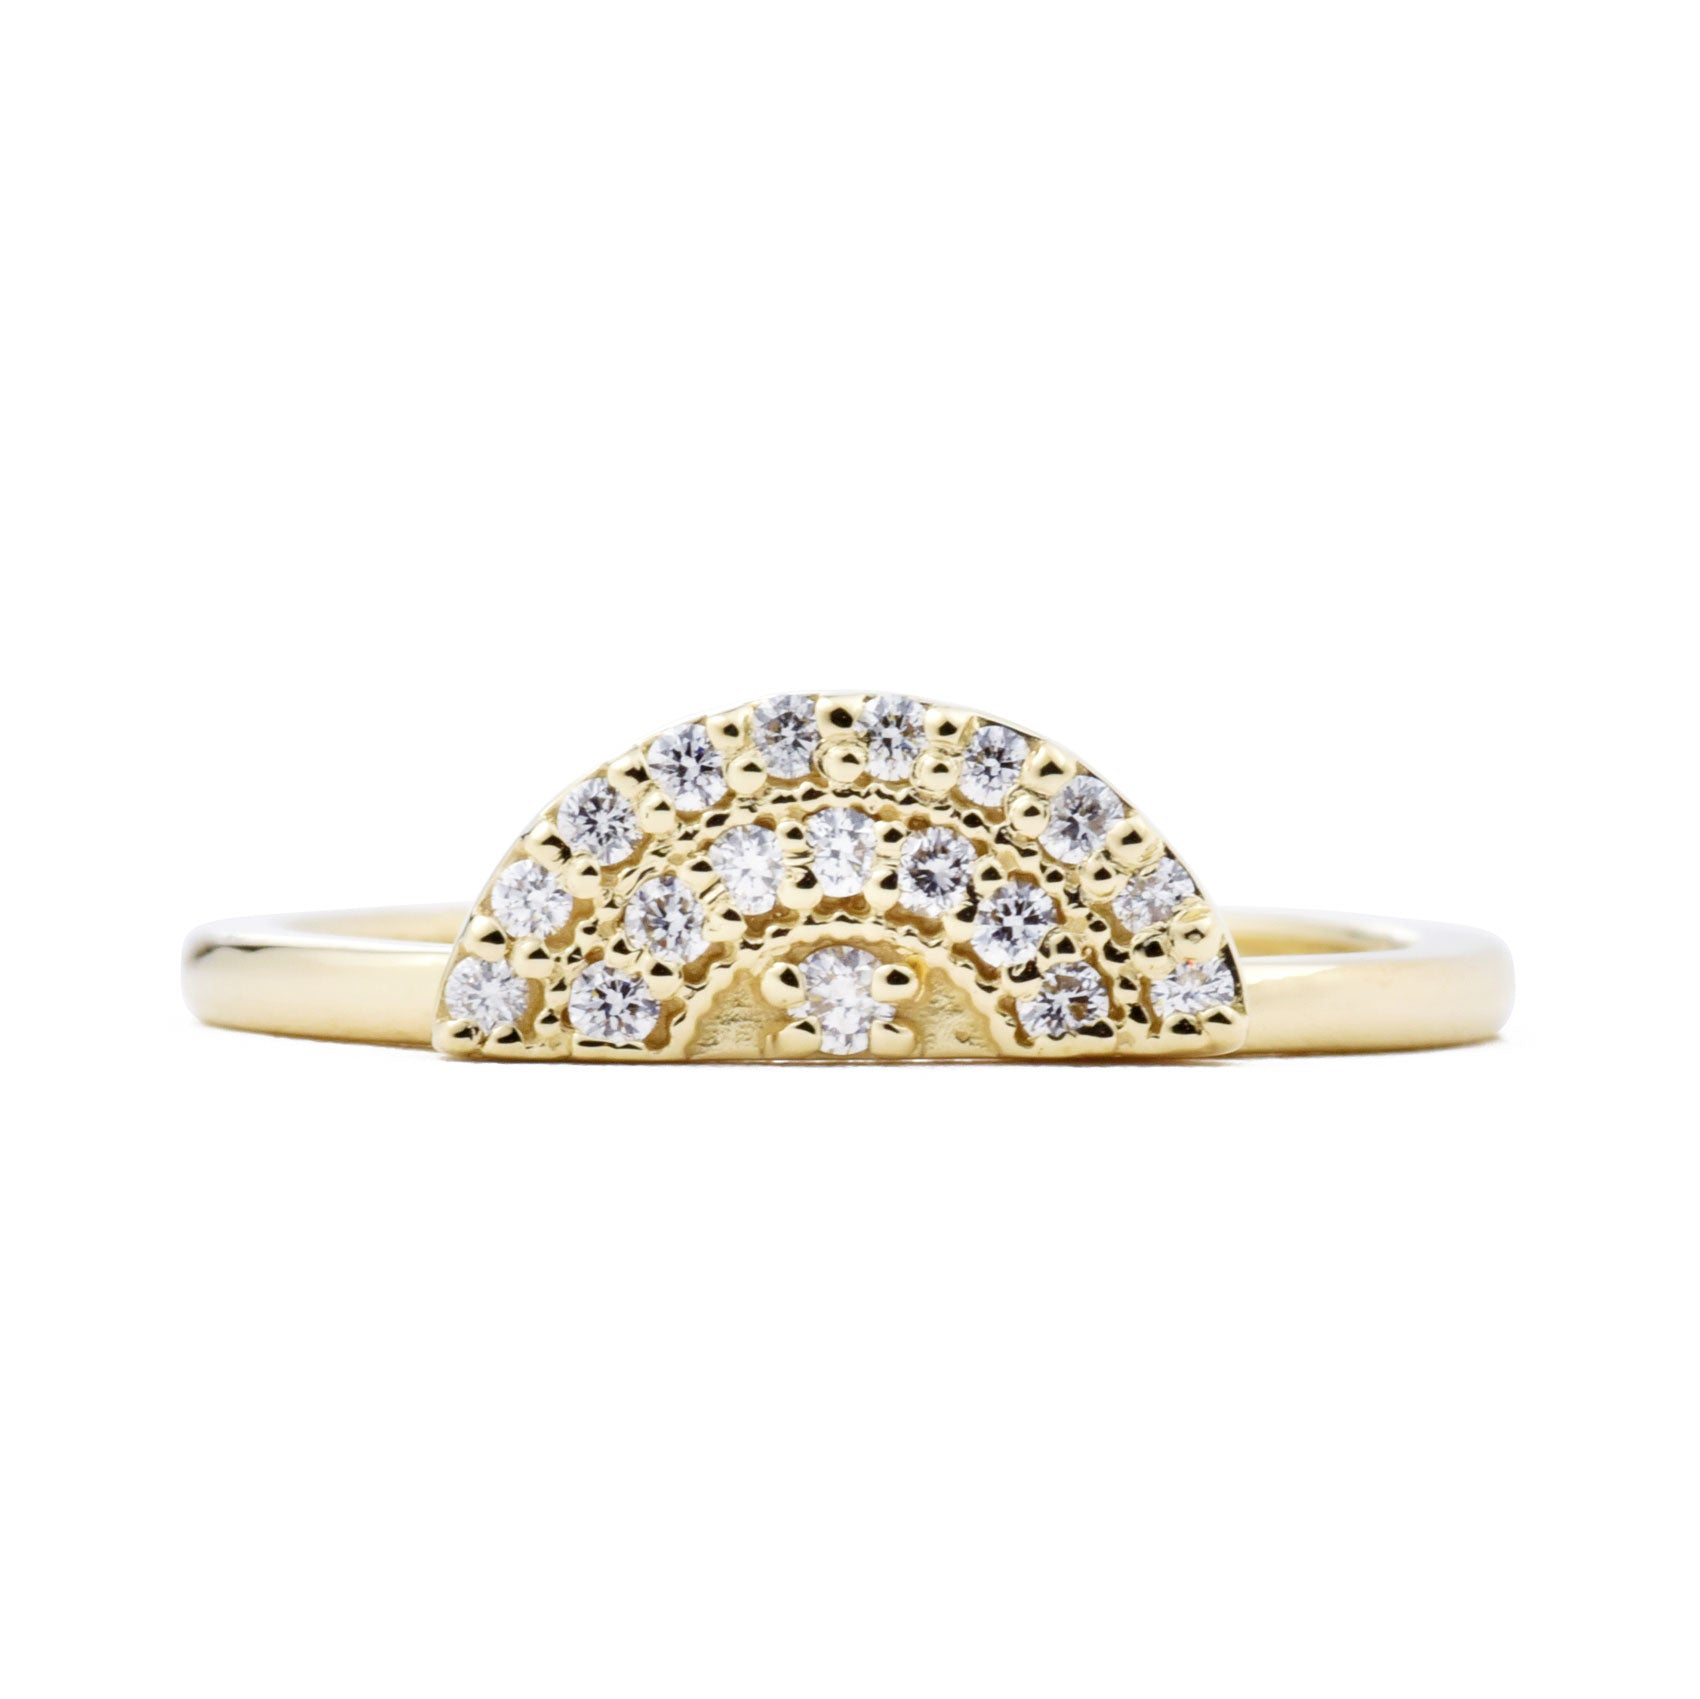 Sunrise Arc Diamond Ring in yellow gold